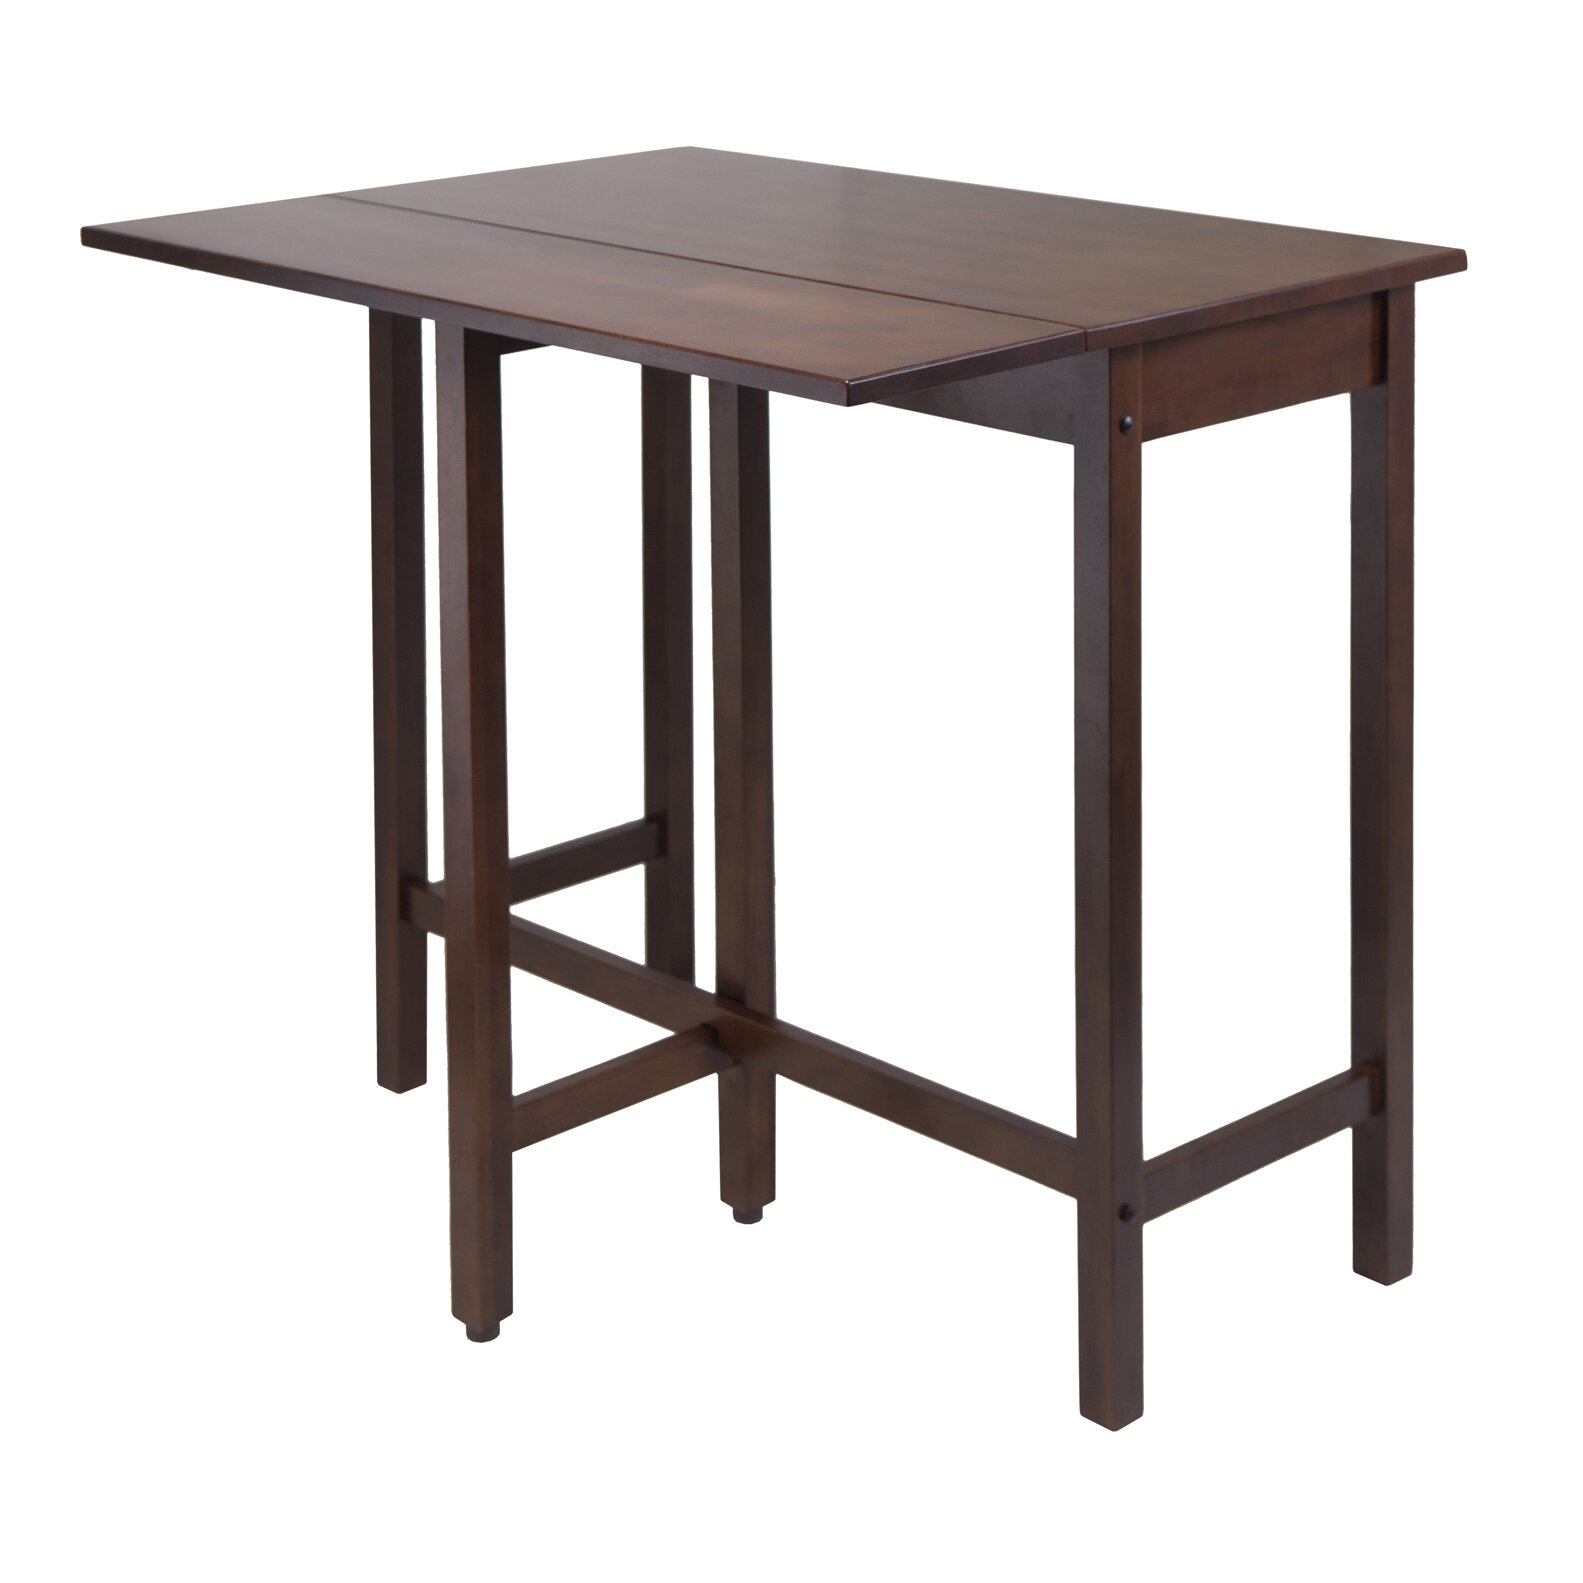 Winsome lynnwood counter height extendable dining table for Tall dining table